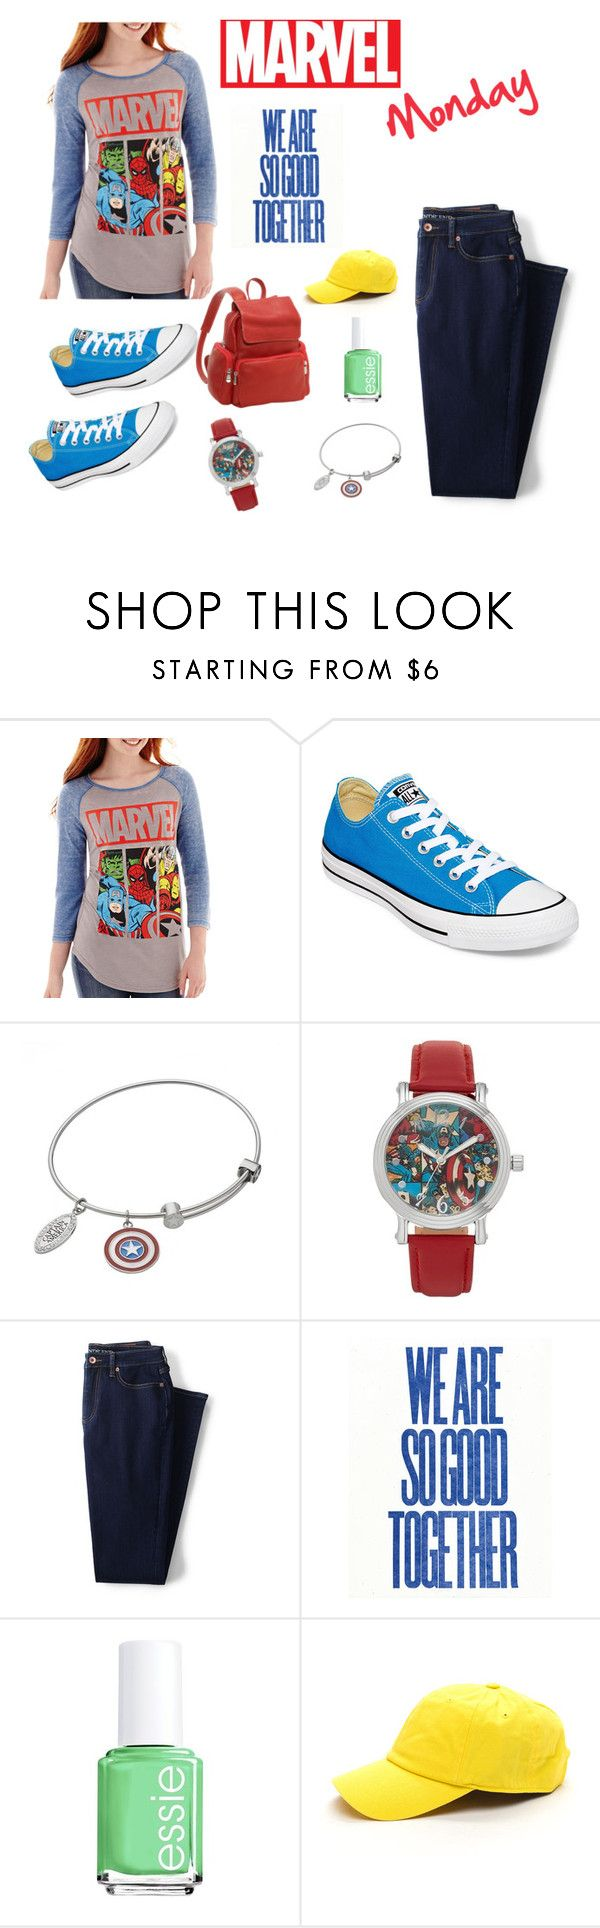 """""""Marvel Monday"""" by hannahbanana-218 ❤ liked on Polyvore featuring Converse, Marvel, Lands' End, Essie, Le Donne, casual, red, classy and marvel"""